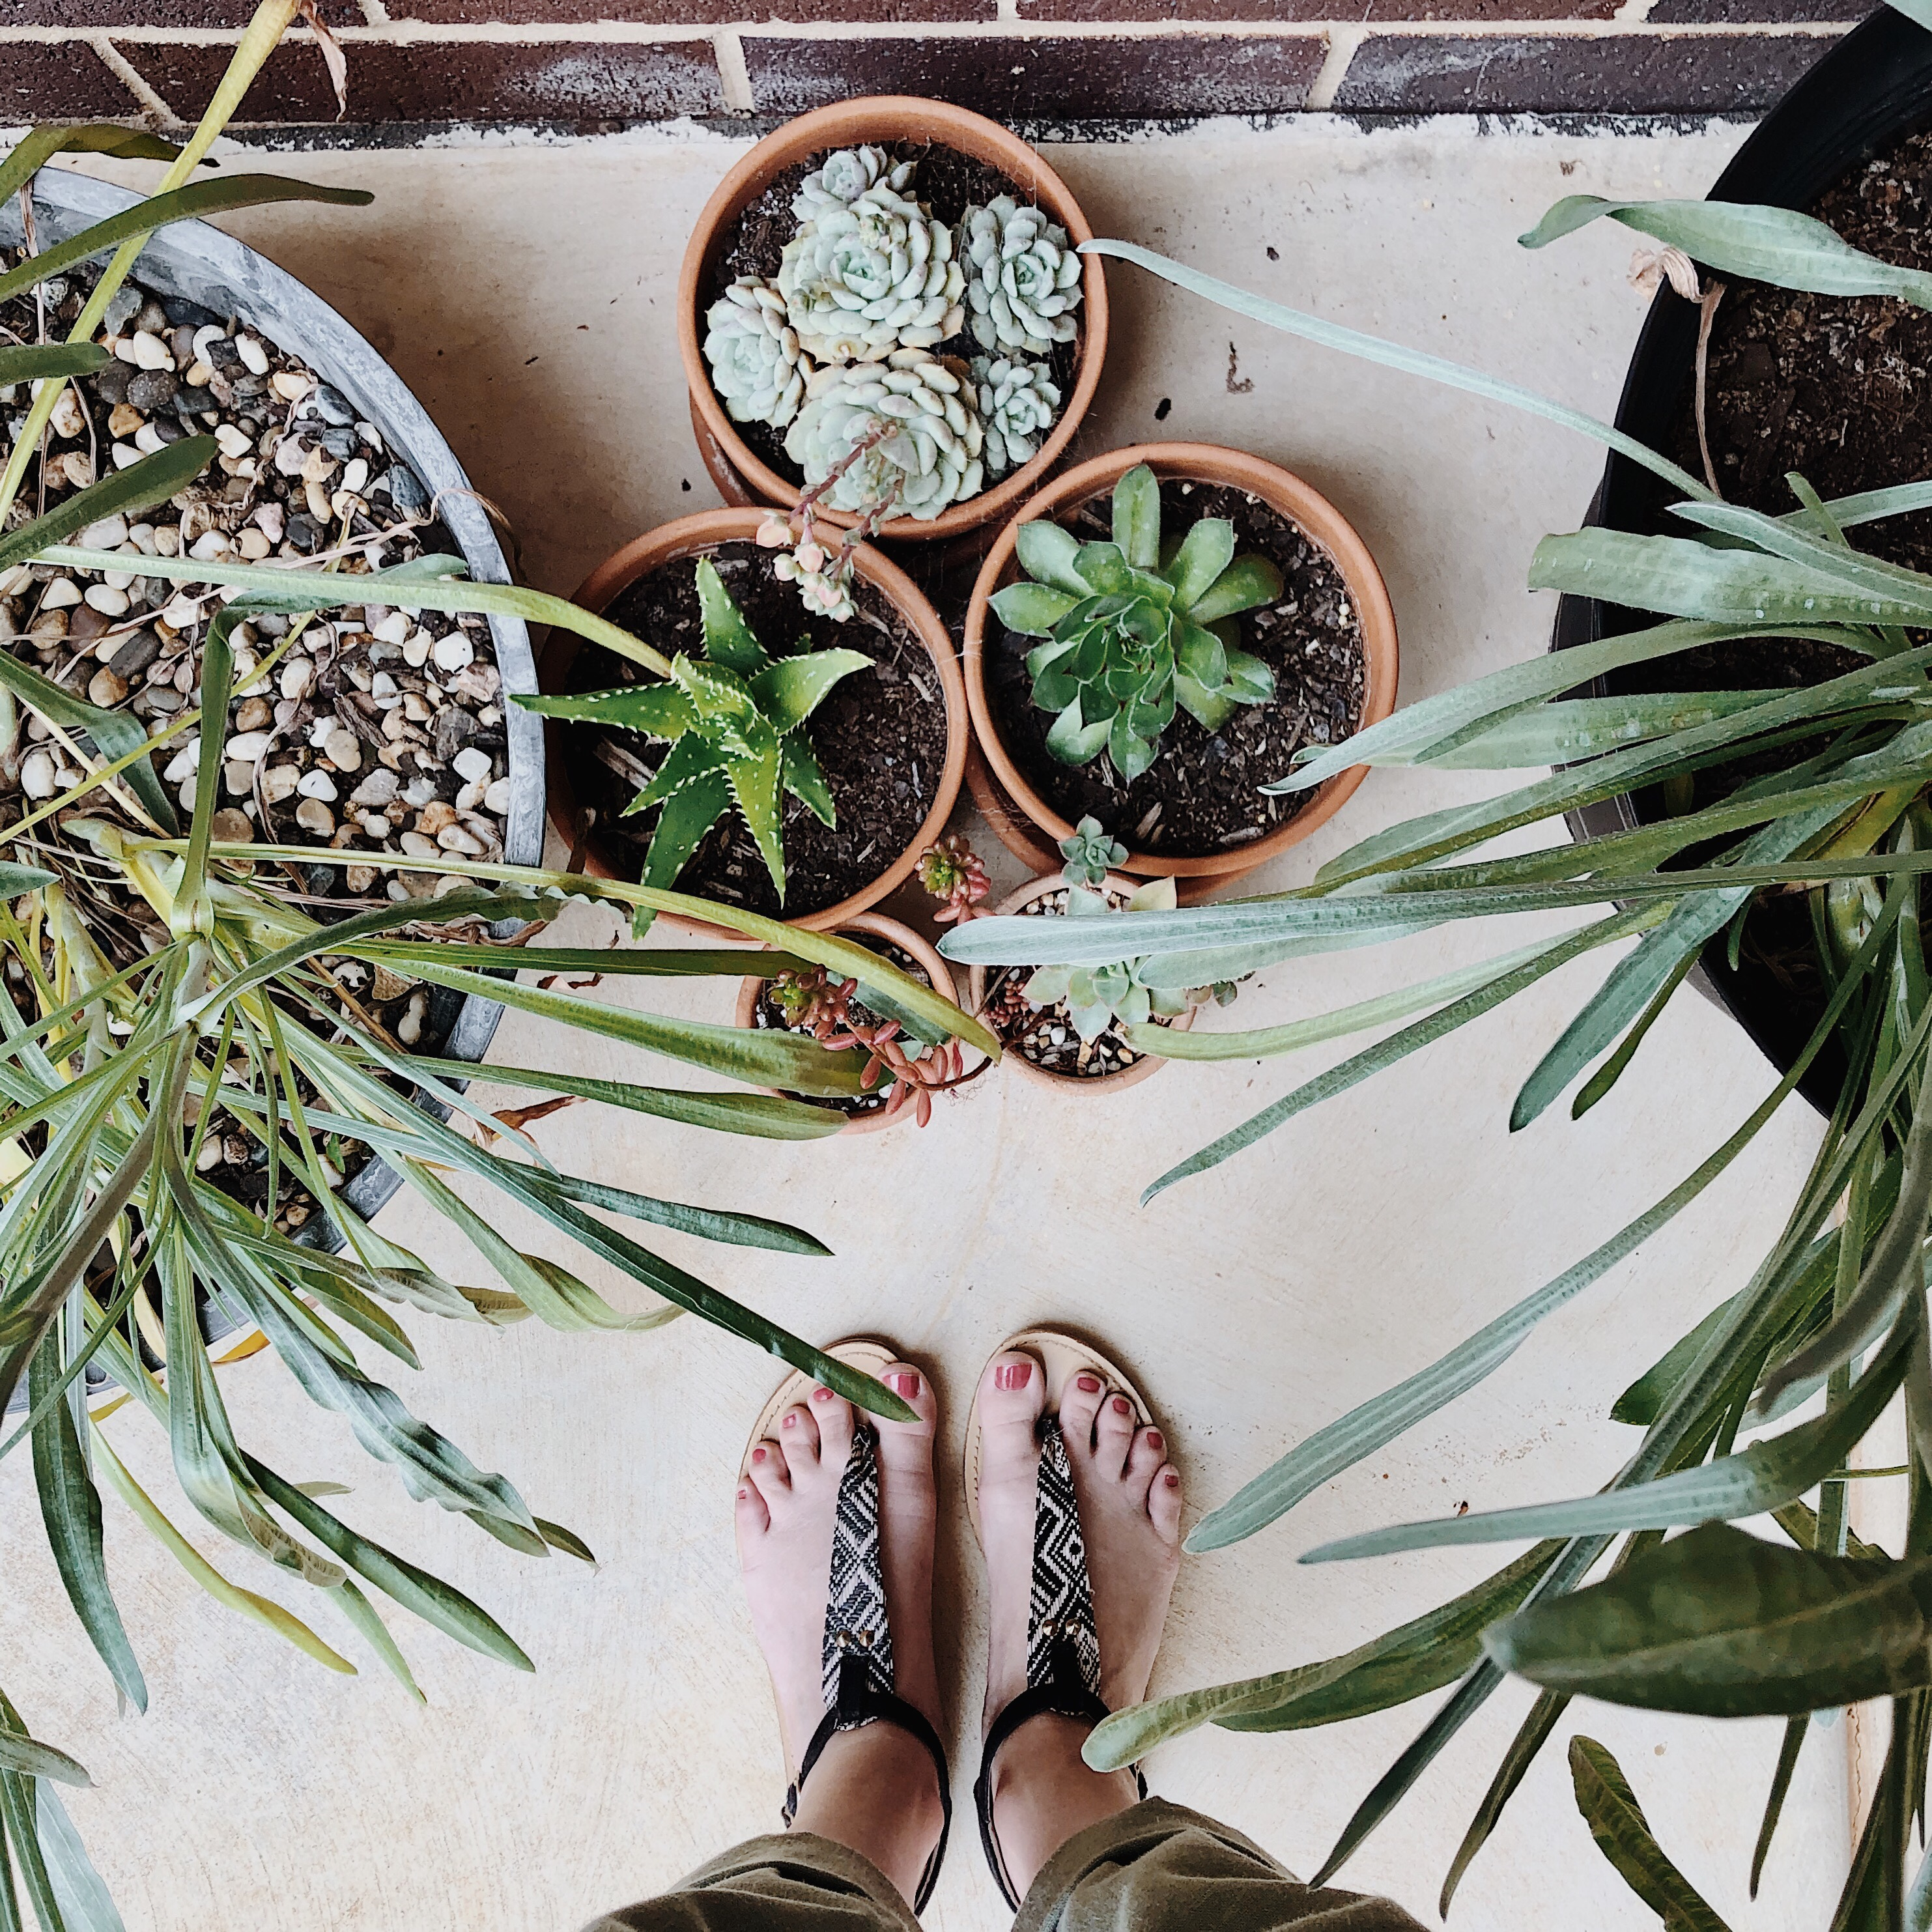 Looking down at a woman's feet in sandals surrounded by pot plants.